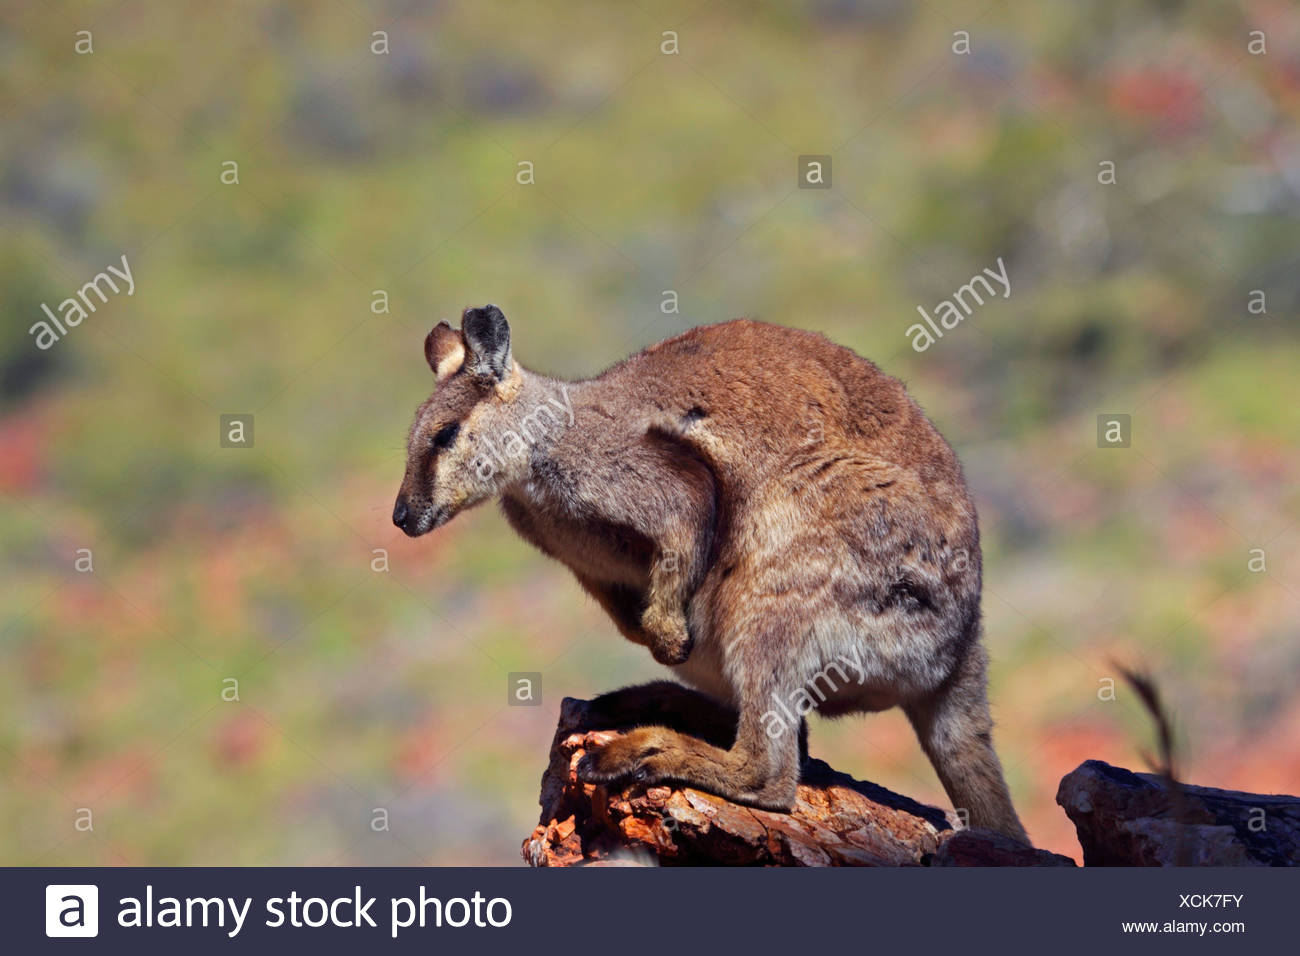 Black-footed rock wallaby (Petrogale lateralis), sitting on a rock, Australia, Northern Territory, Western MacDonnell Ranges, Ormiston Gorge - Stock Image